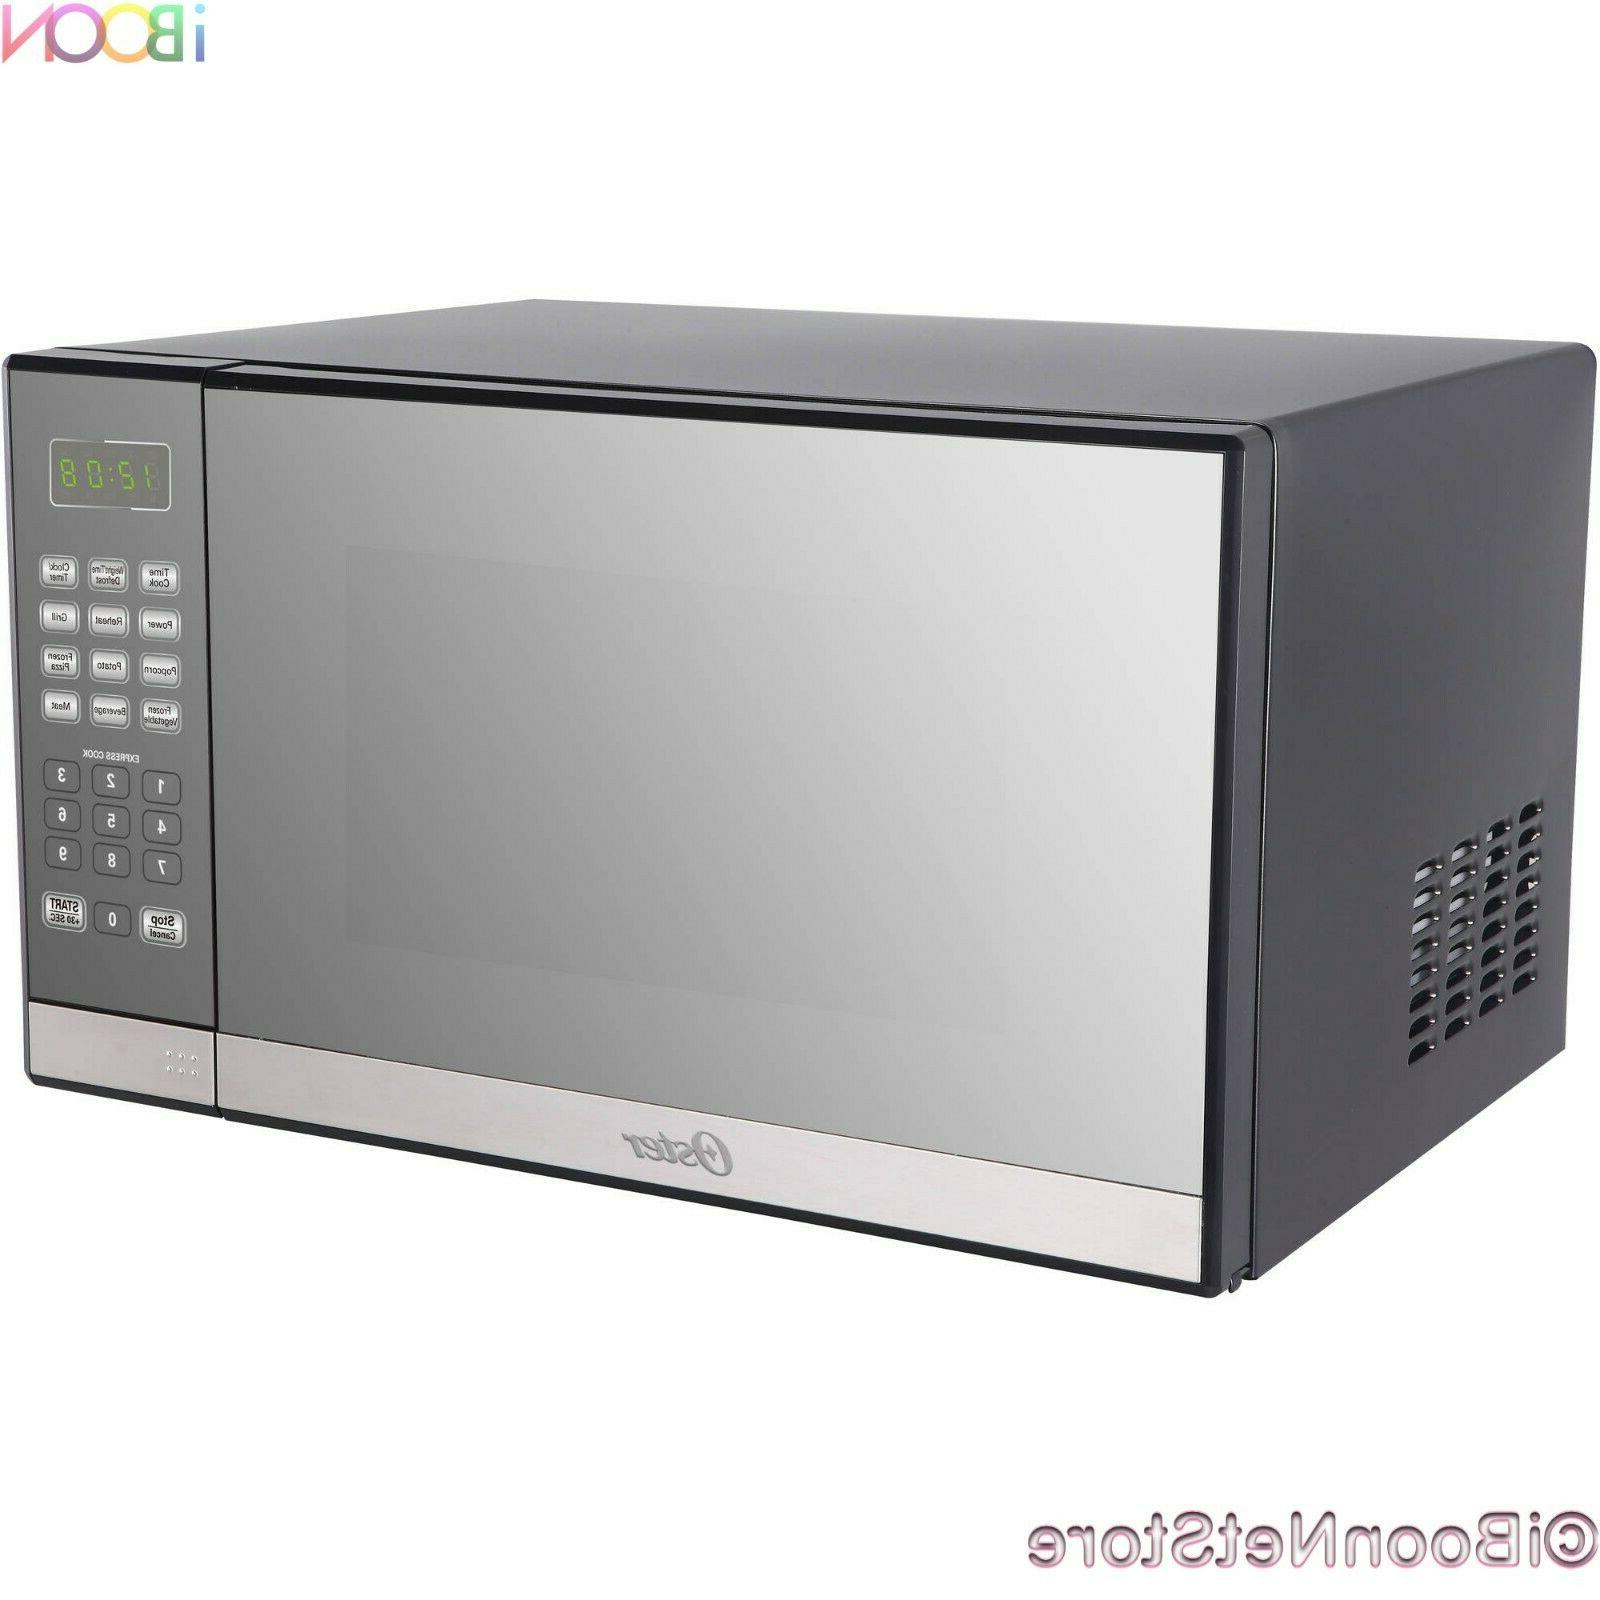 Oster Microwave CounterTop Stainless Steel 1.3 ft with